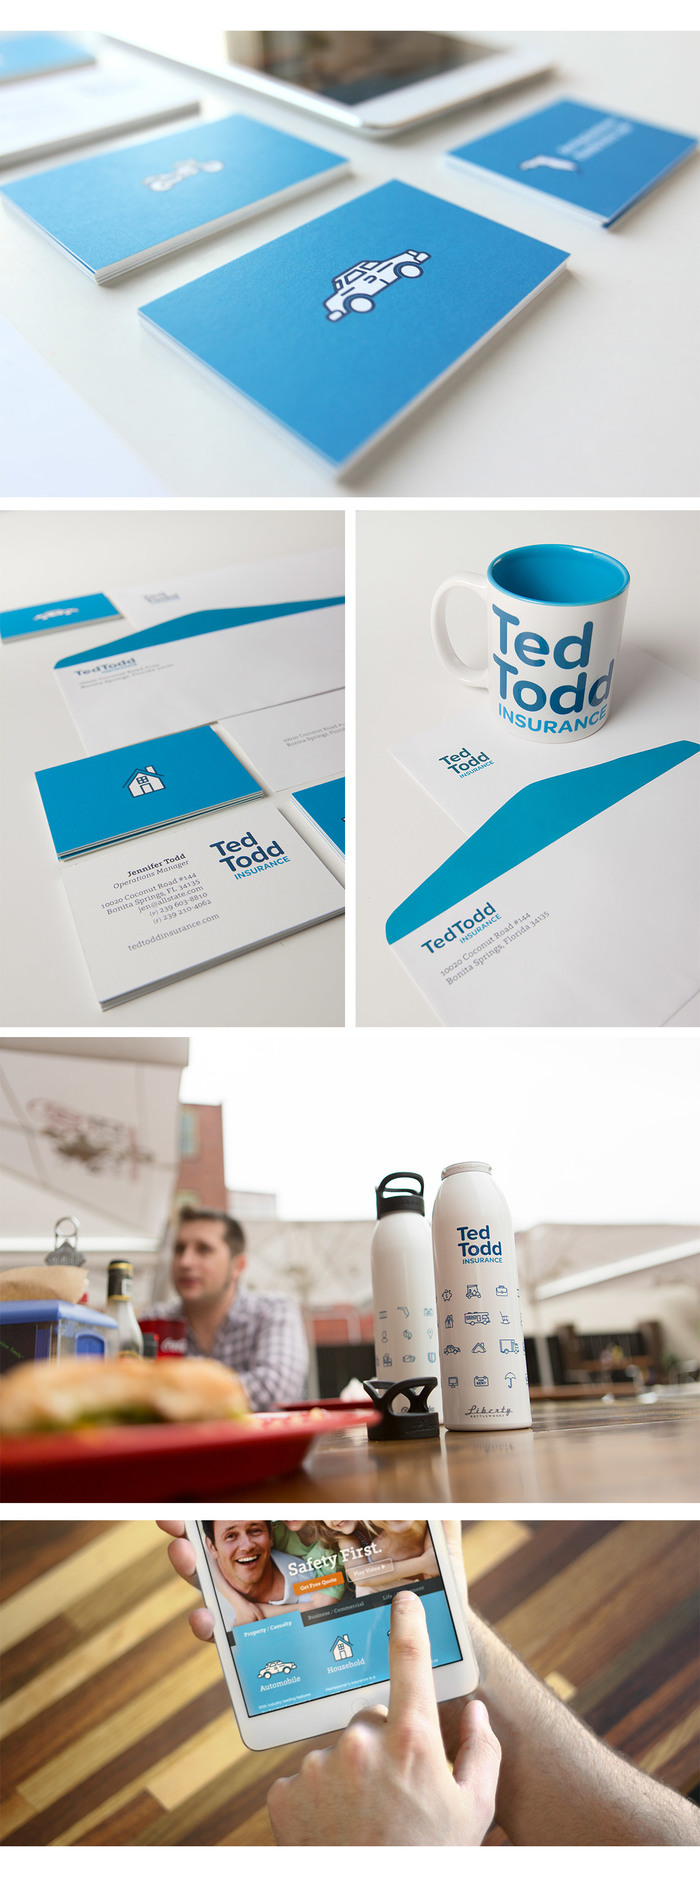 Ted Todd Insurance 3